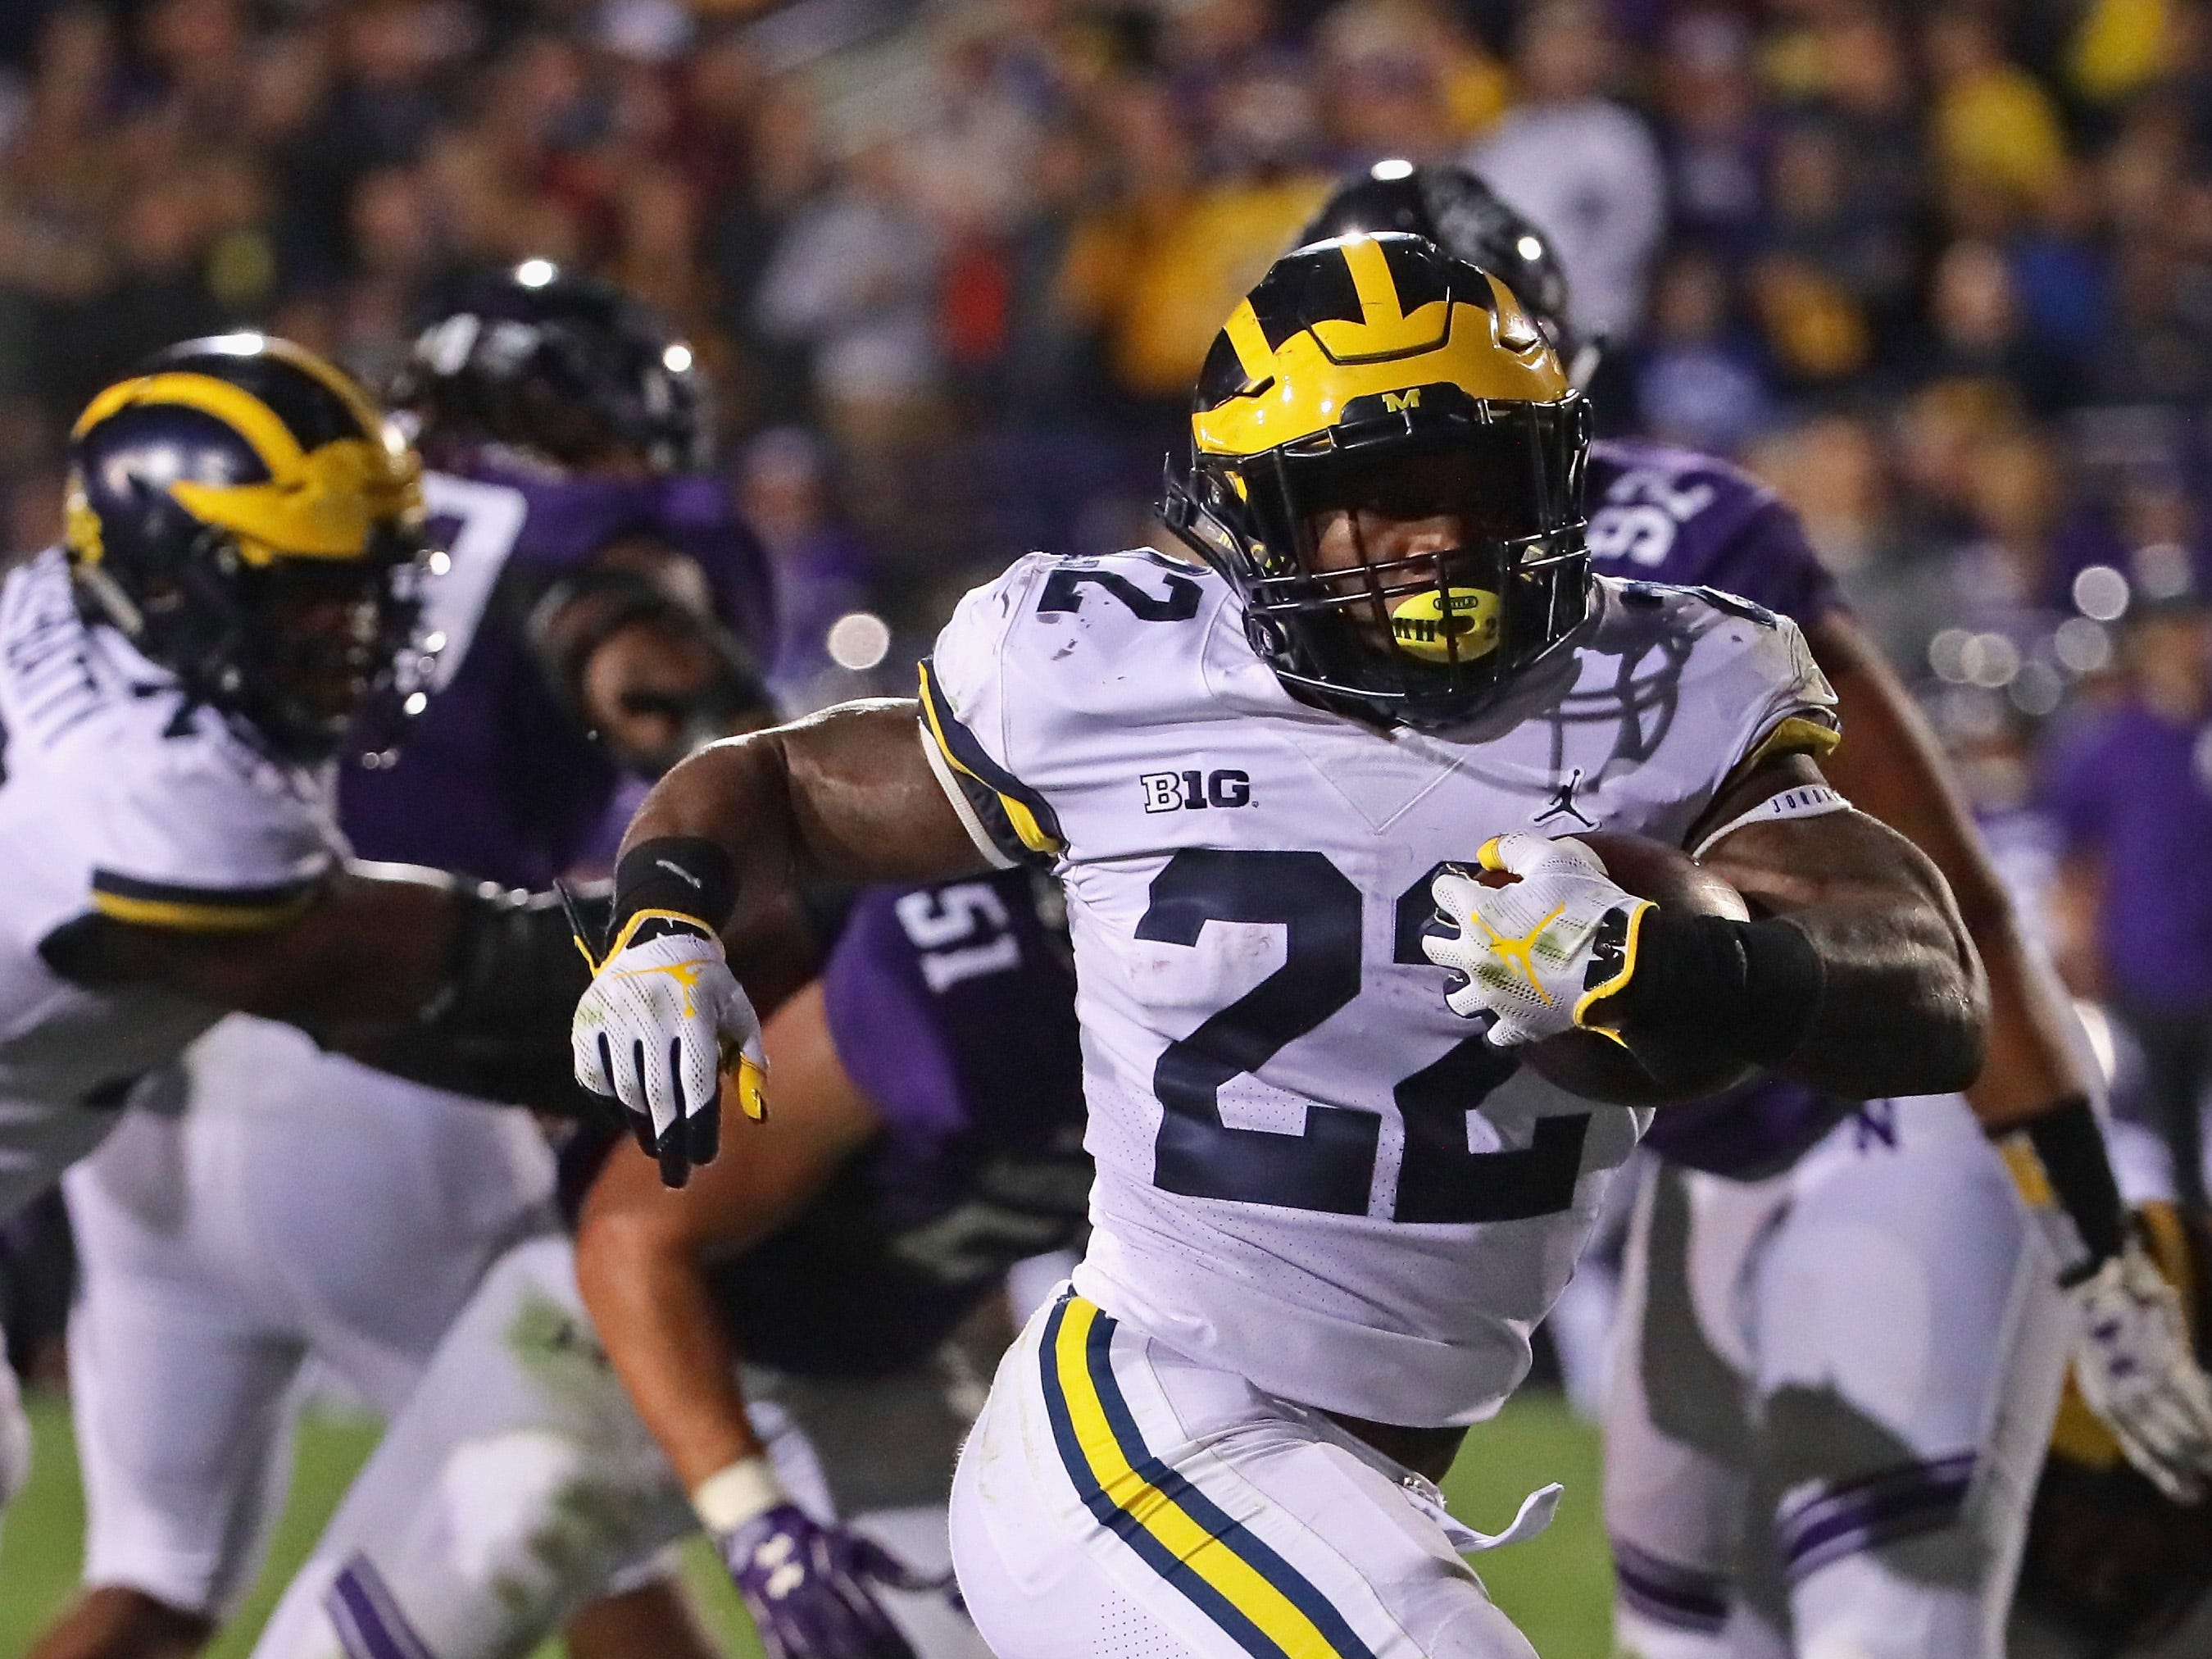 Michigan's Karan Higdon scores the go-ahead touchdown against Northwestern during the fourth quarter at Ryan Field on Sept. 29, 2018 in Evanston, Ill.